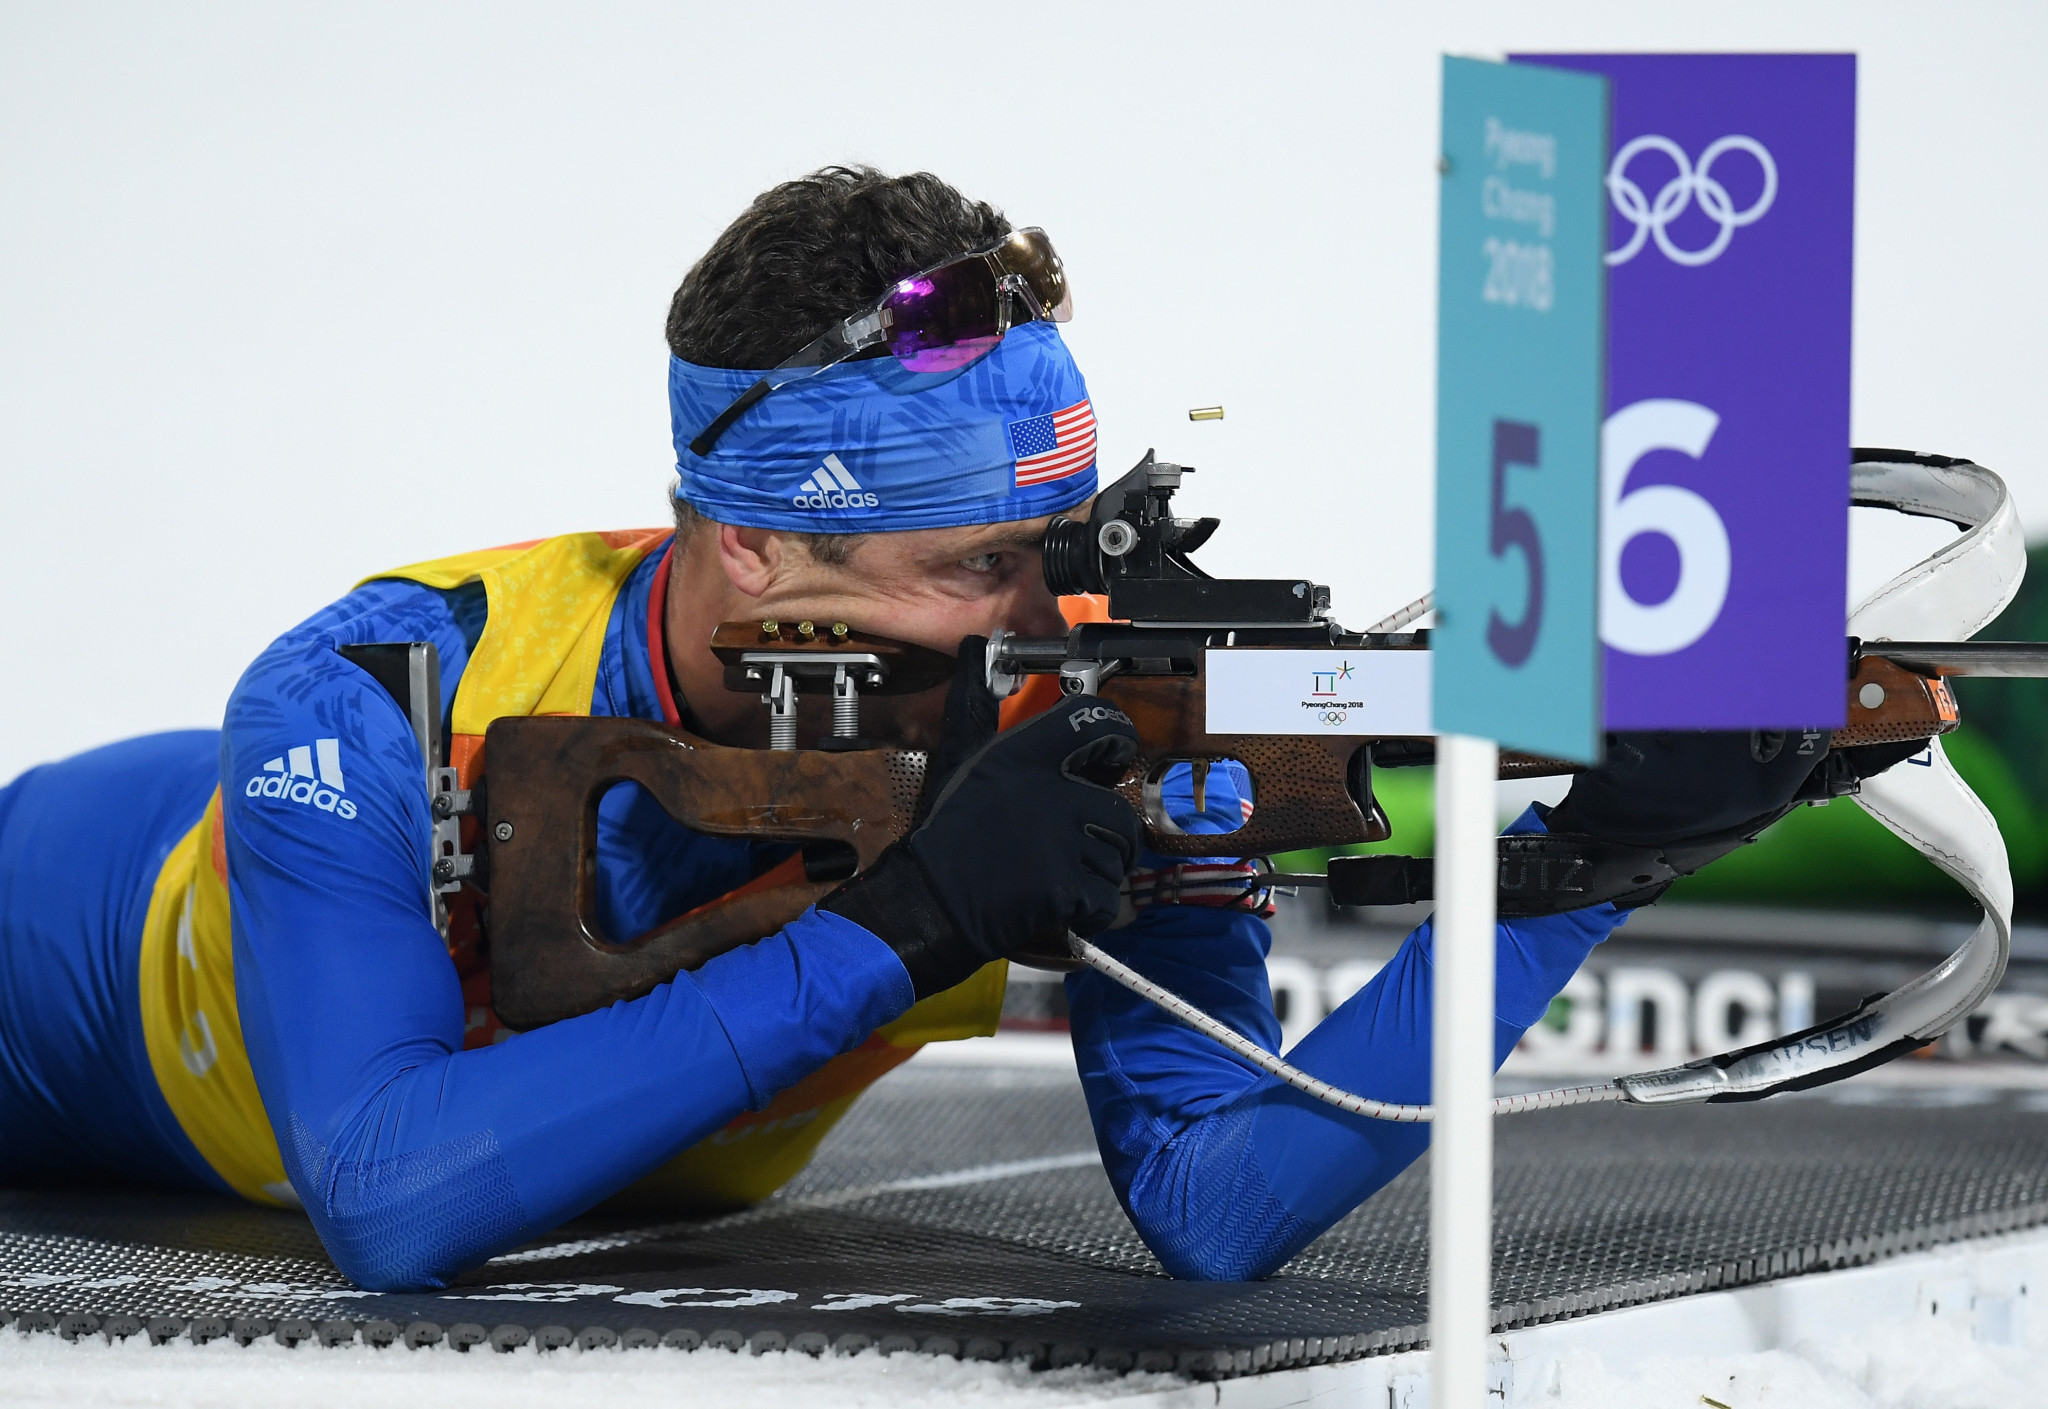 Tim Burke put US Biathlon in the international spotlight when he became the first and only American biathlete to ever lead the overall World Cup ranking in 2010 ©Getty Images